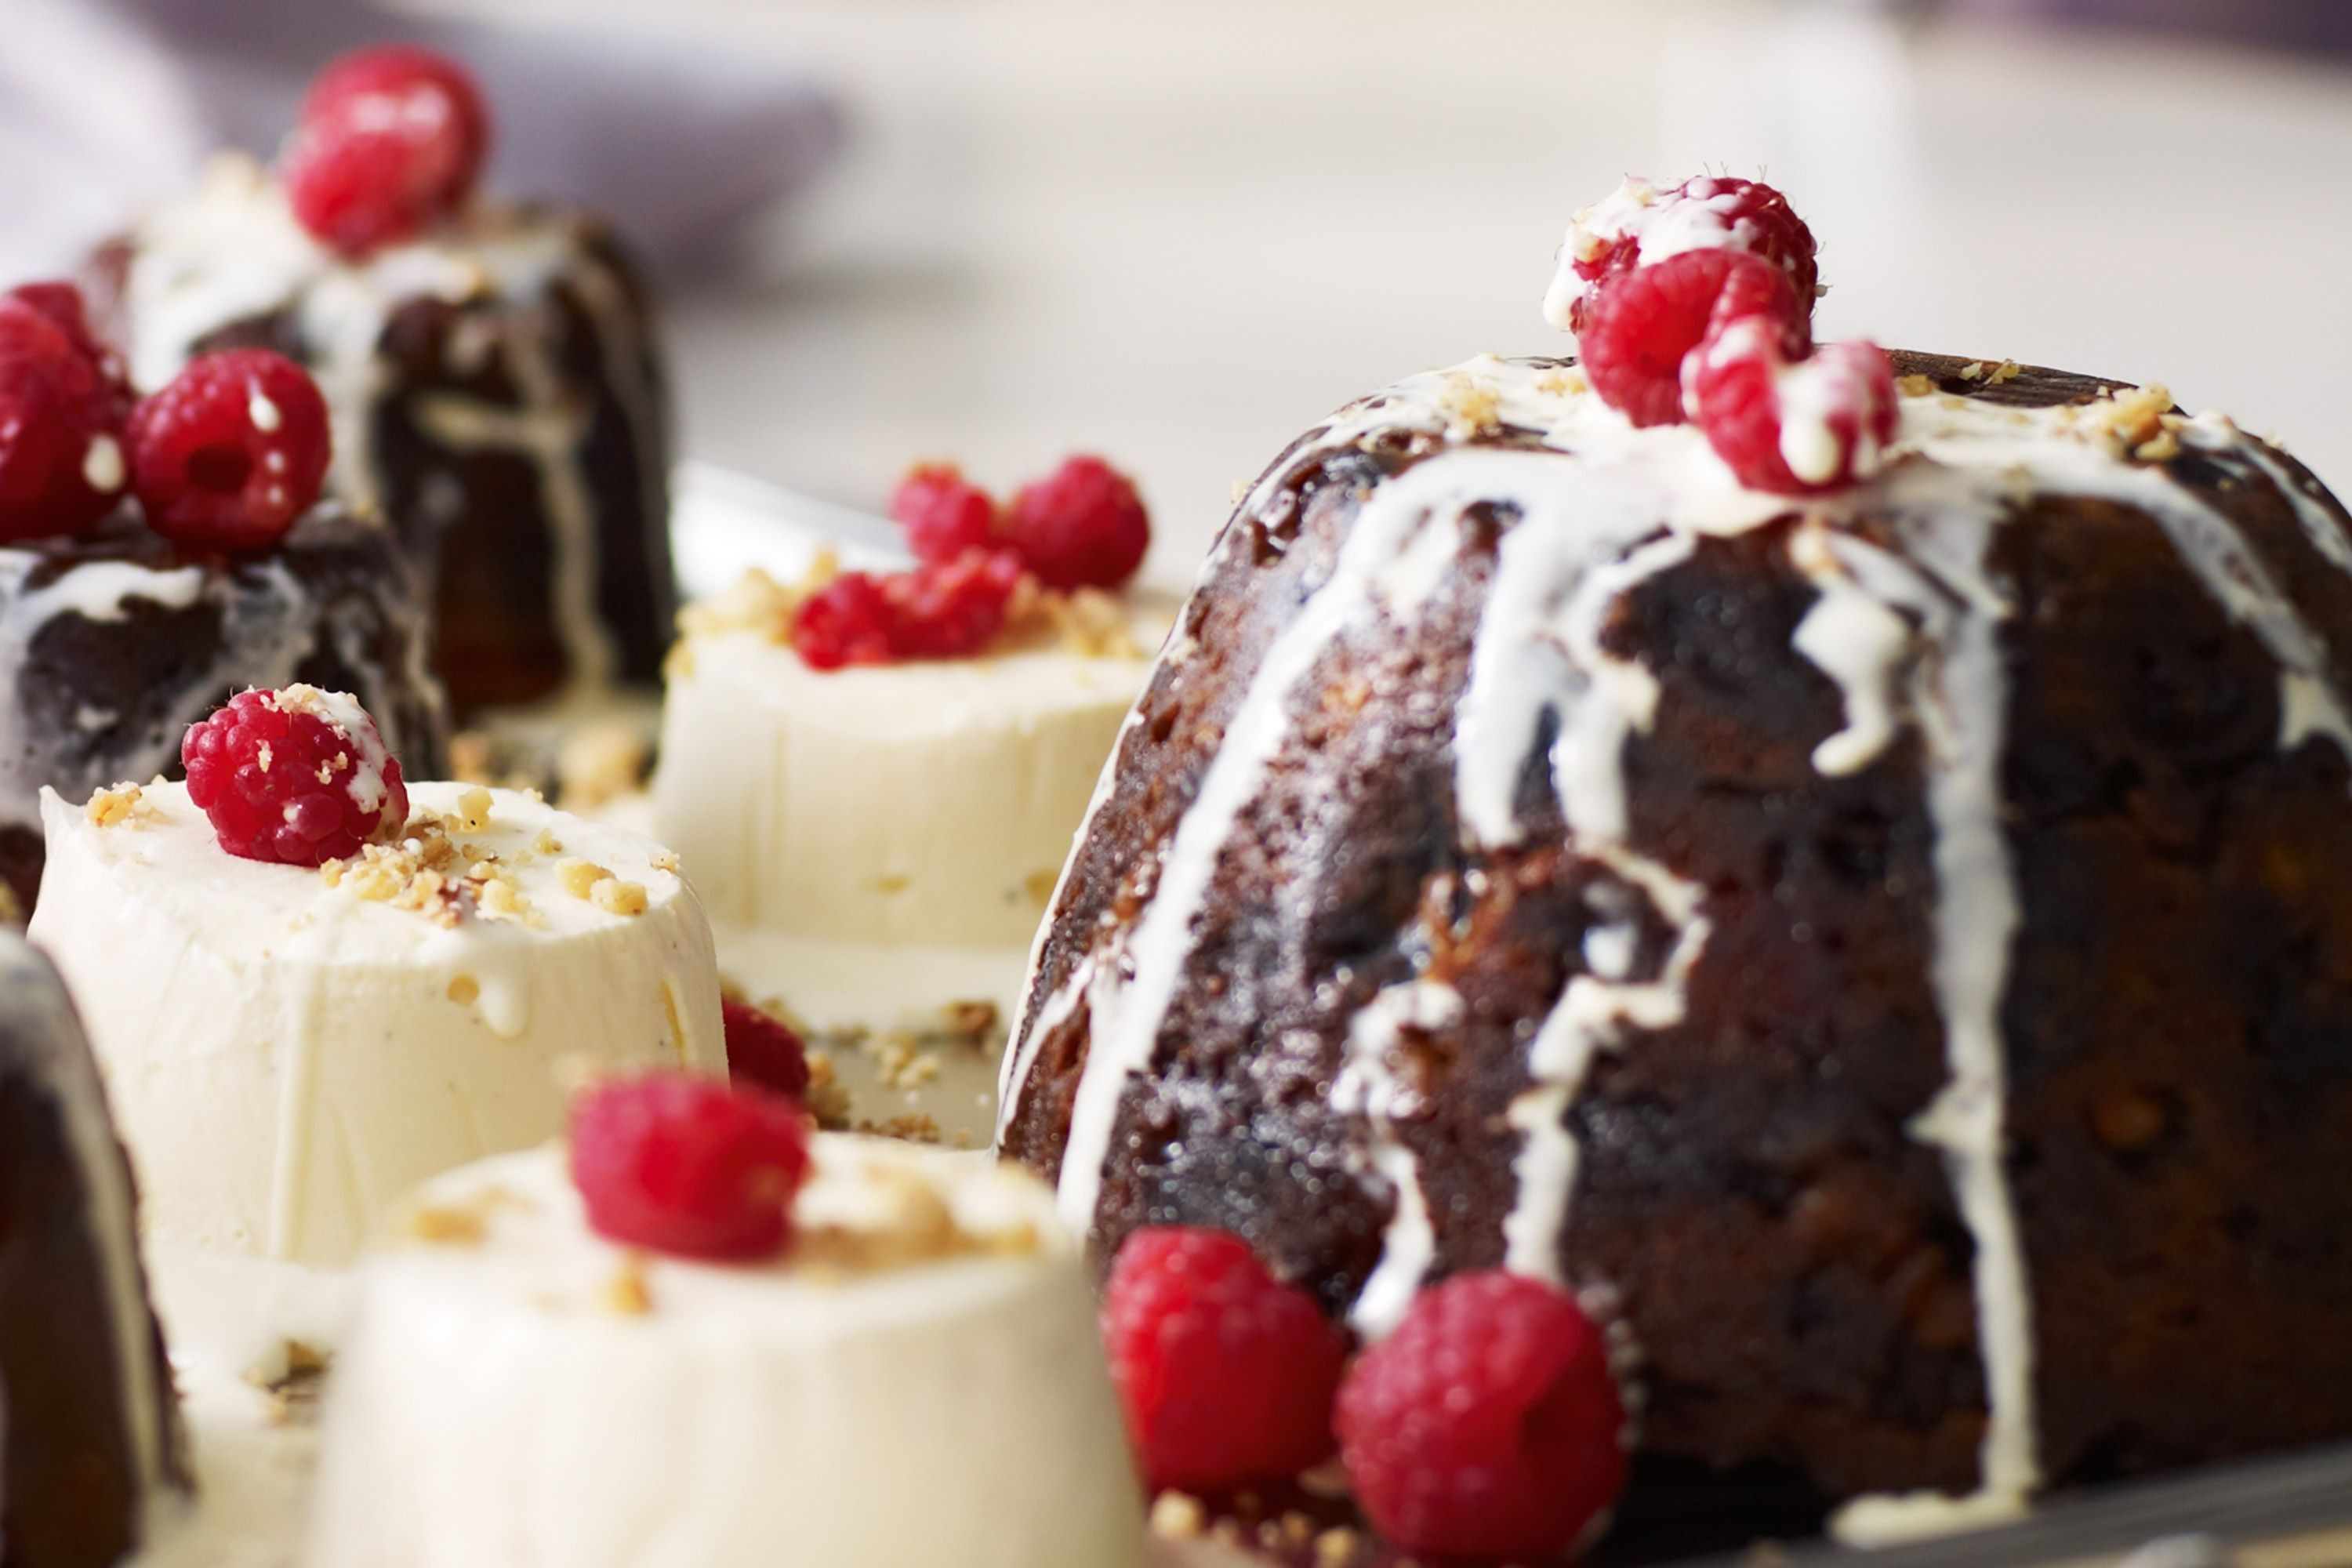 Give the traditional elements of Christmas a modern twist with these elegant festive puddings.